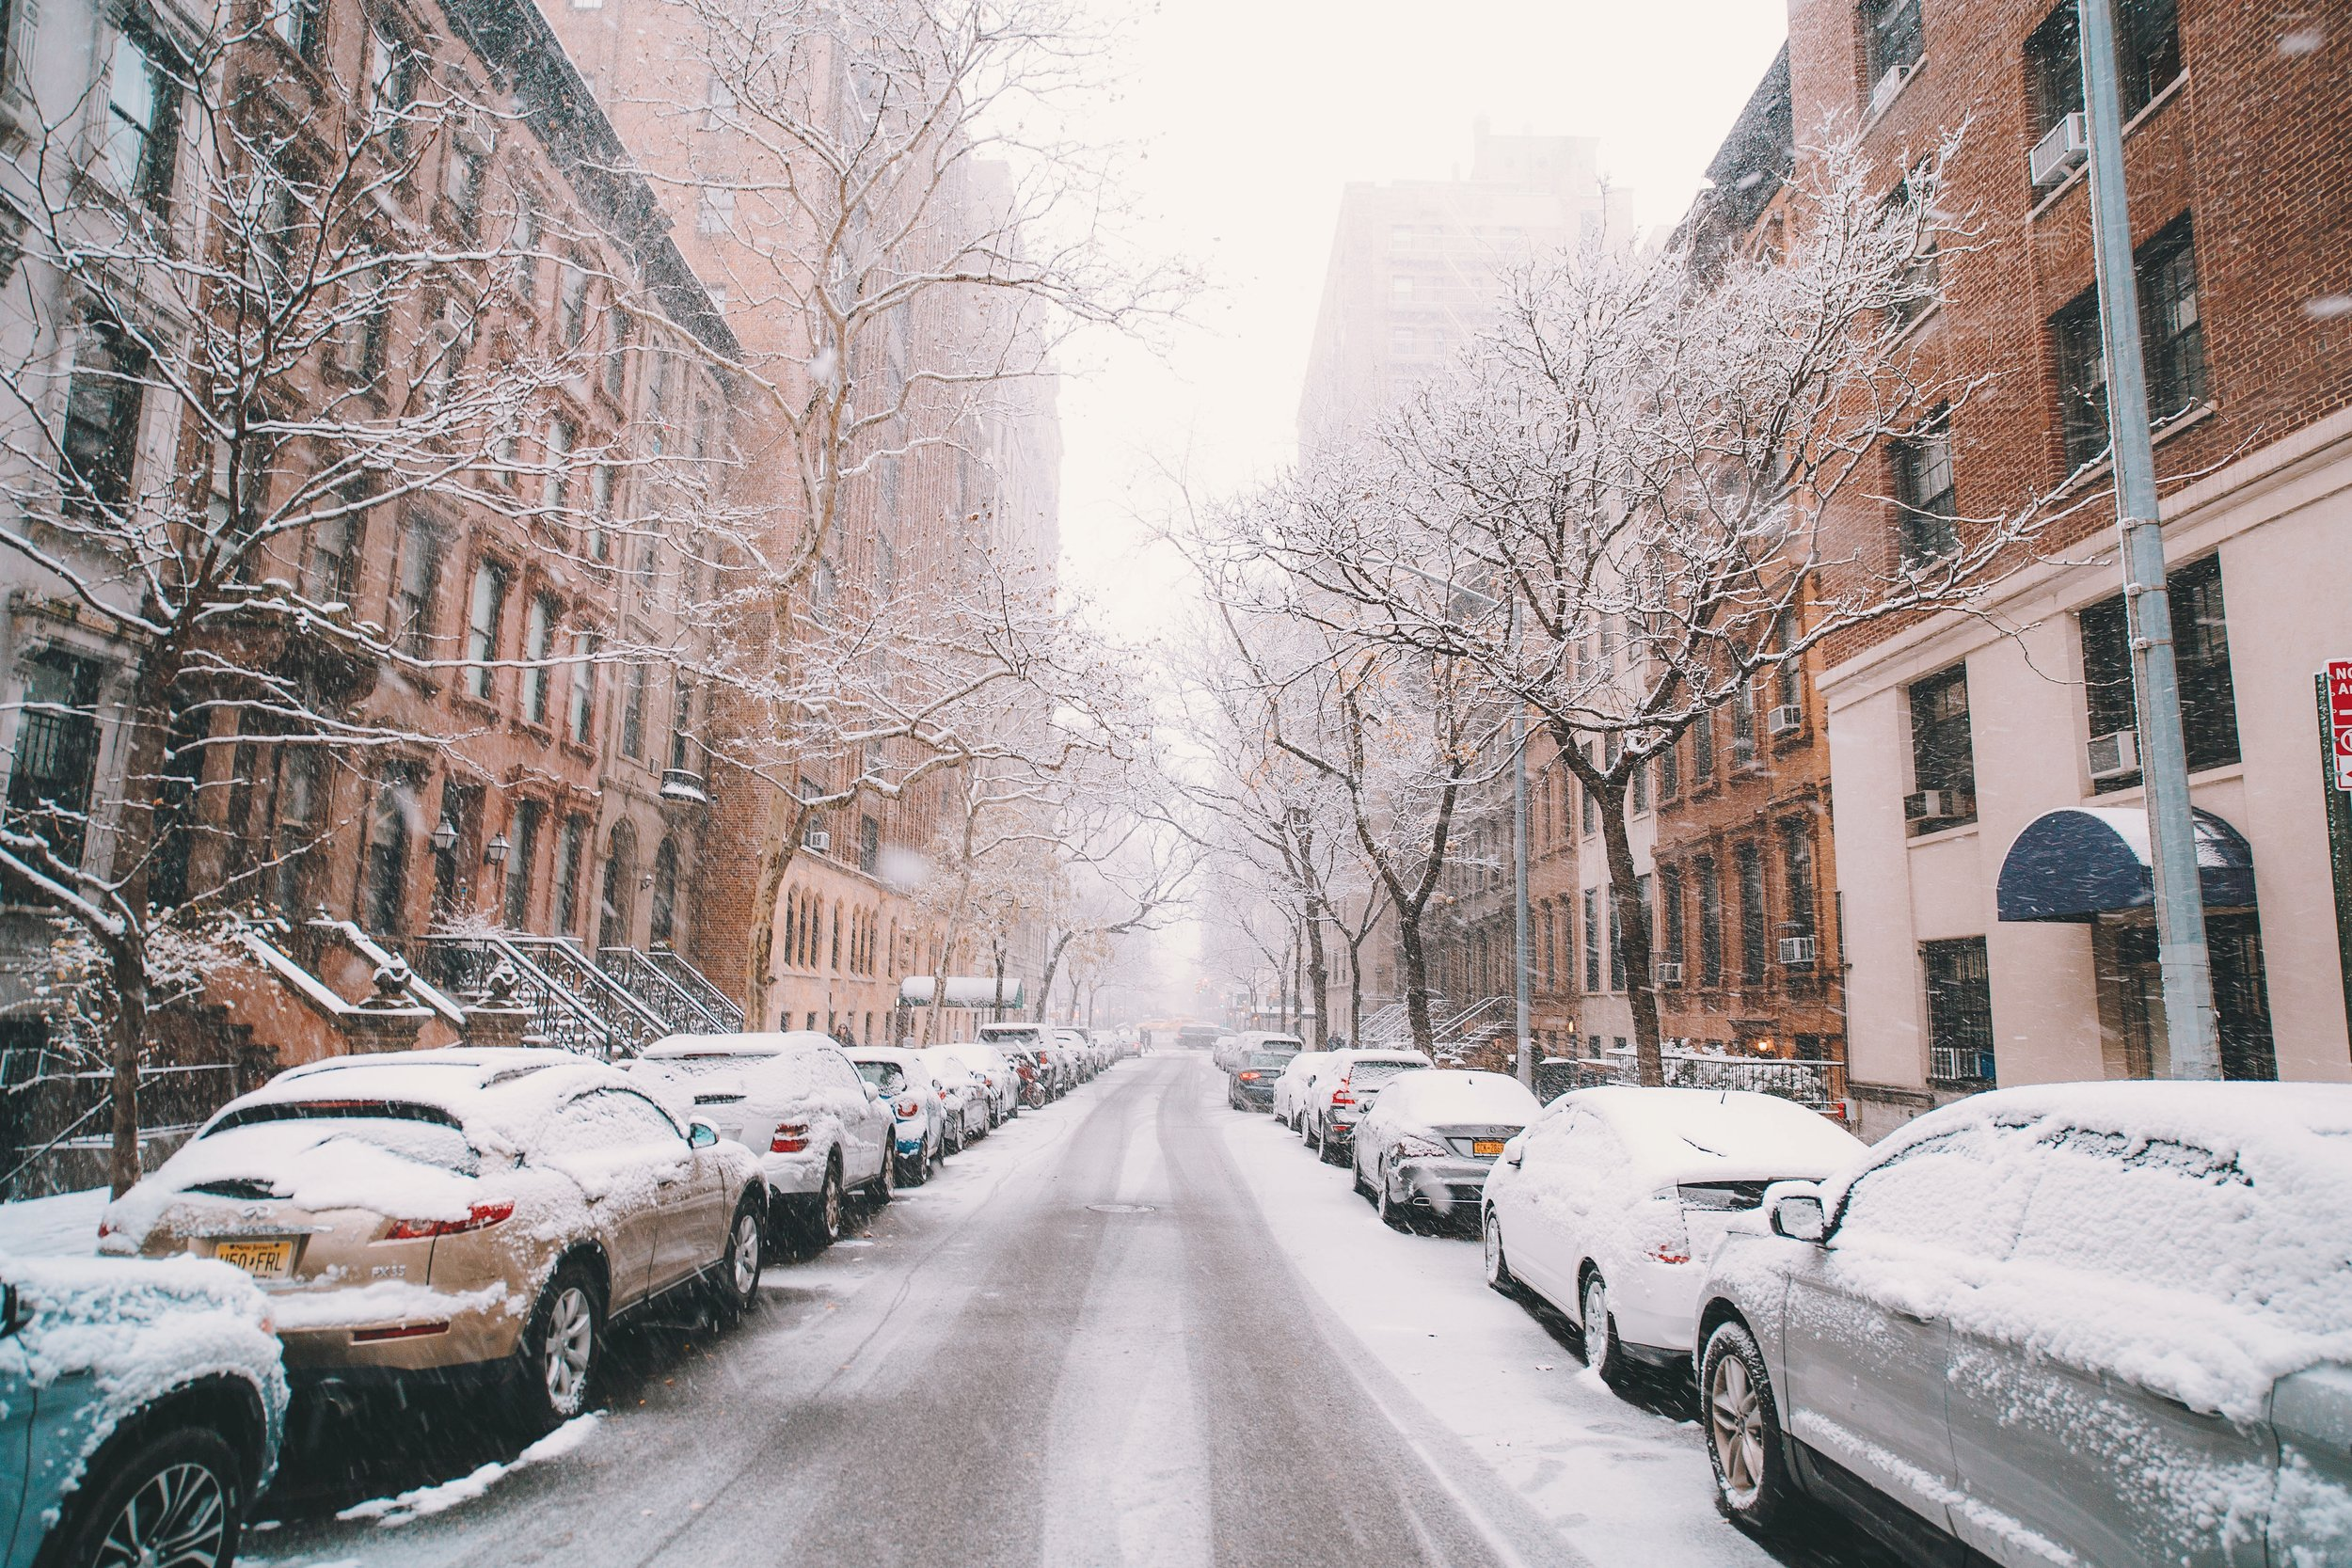 A New York street in the snow